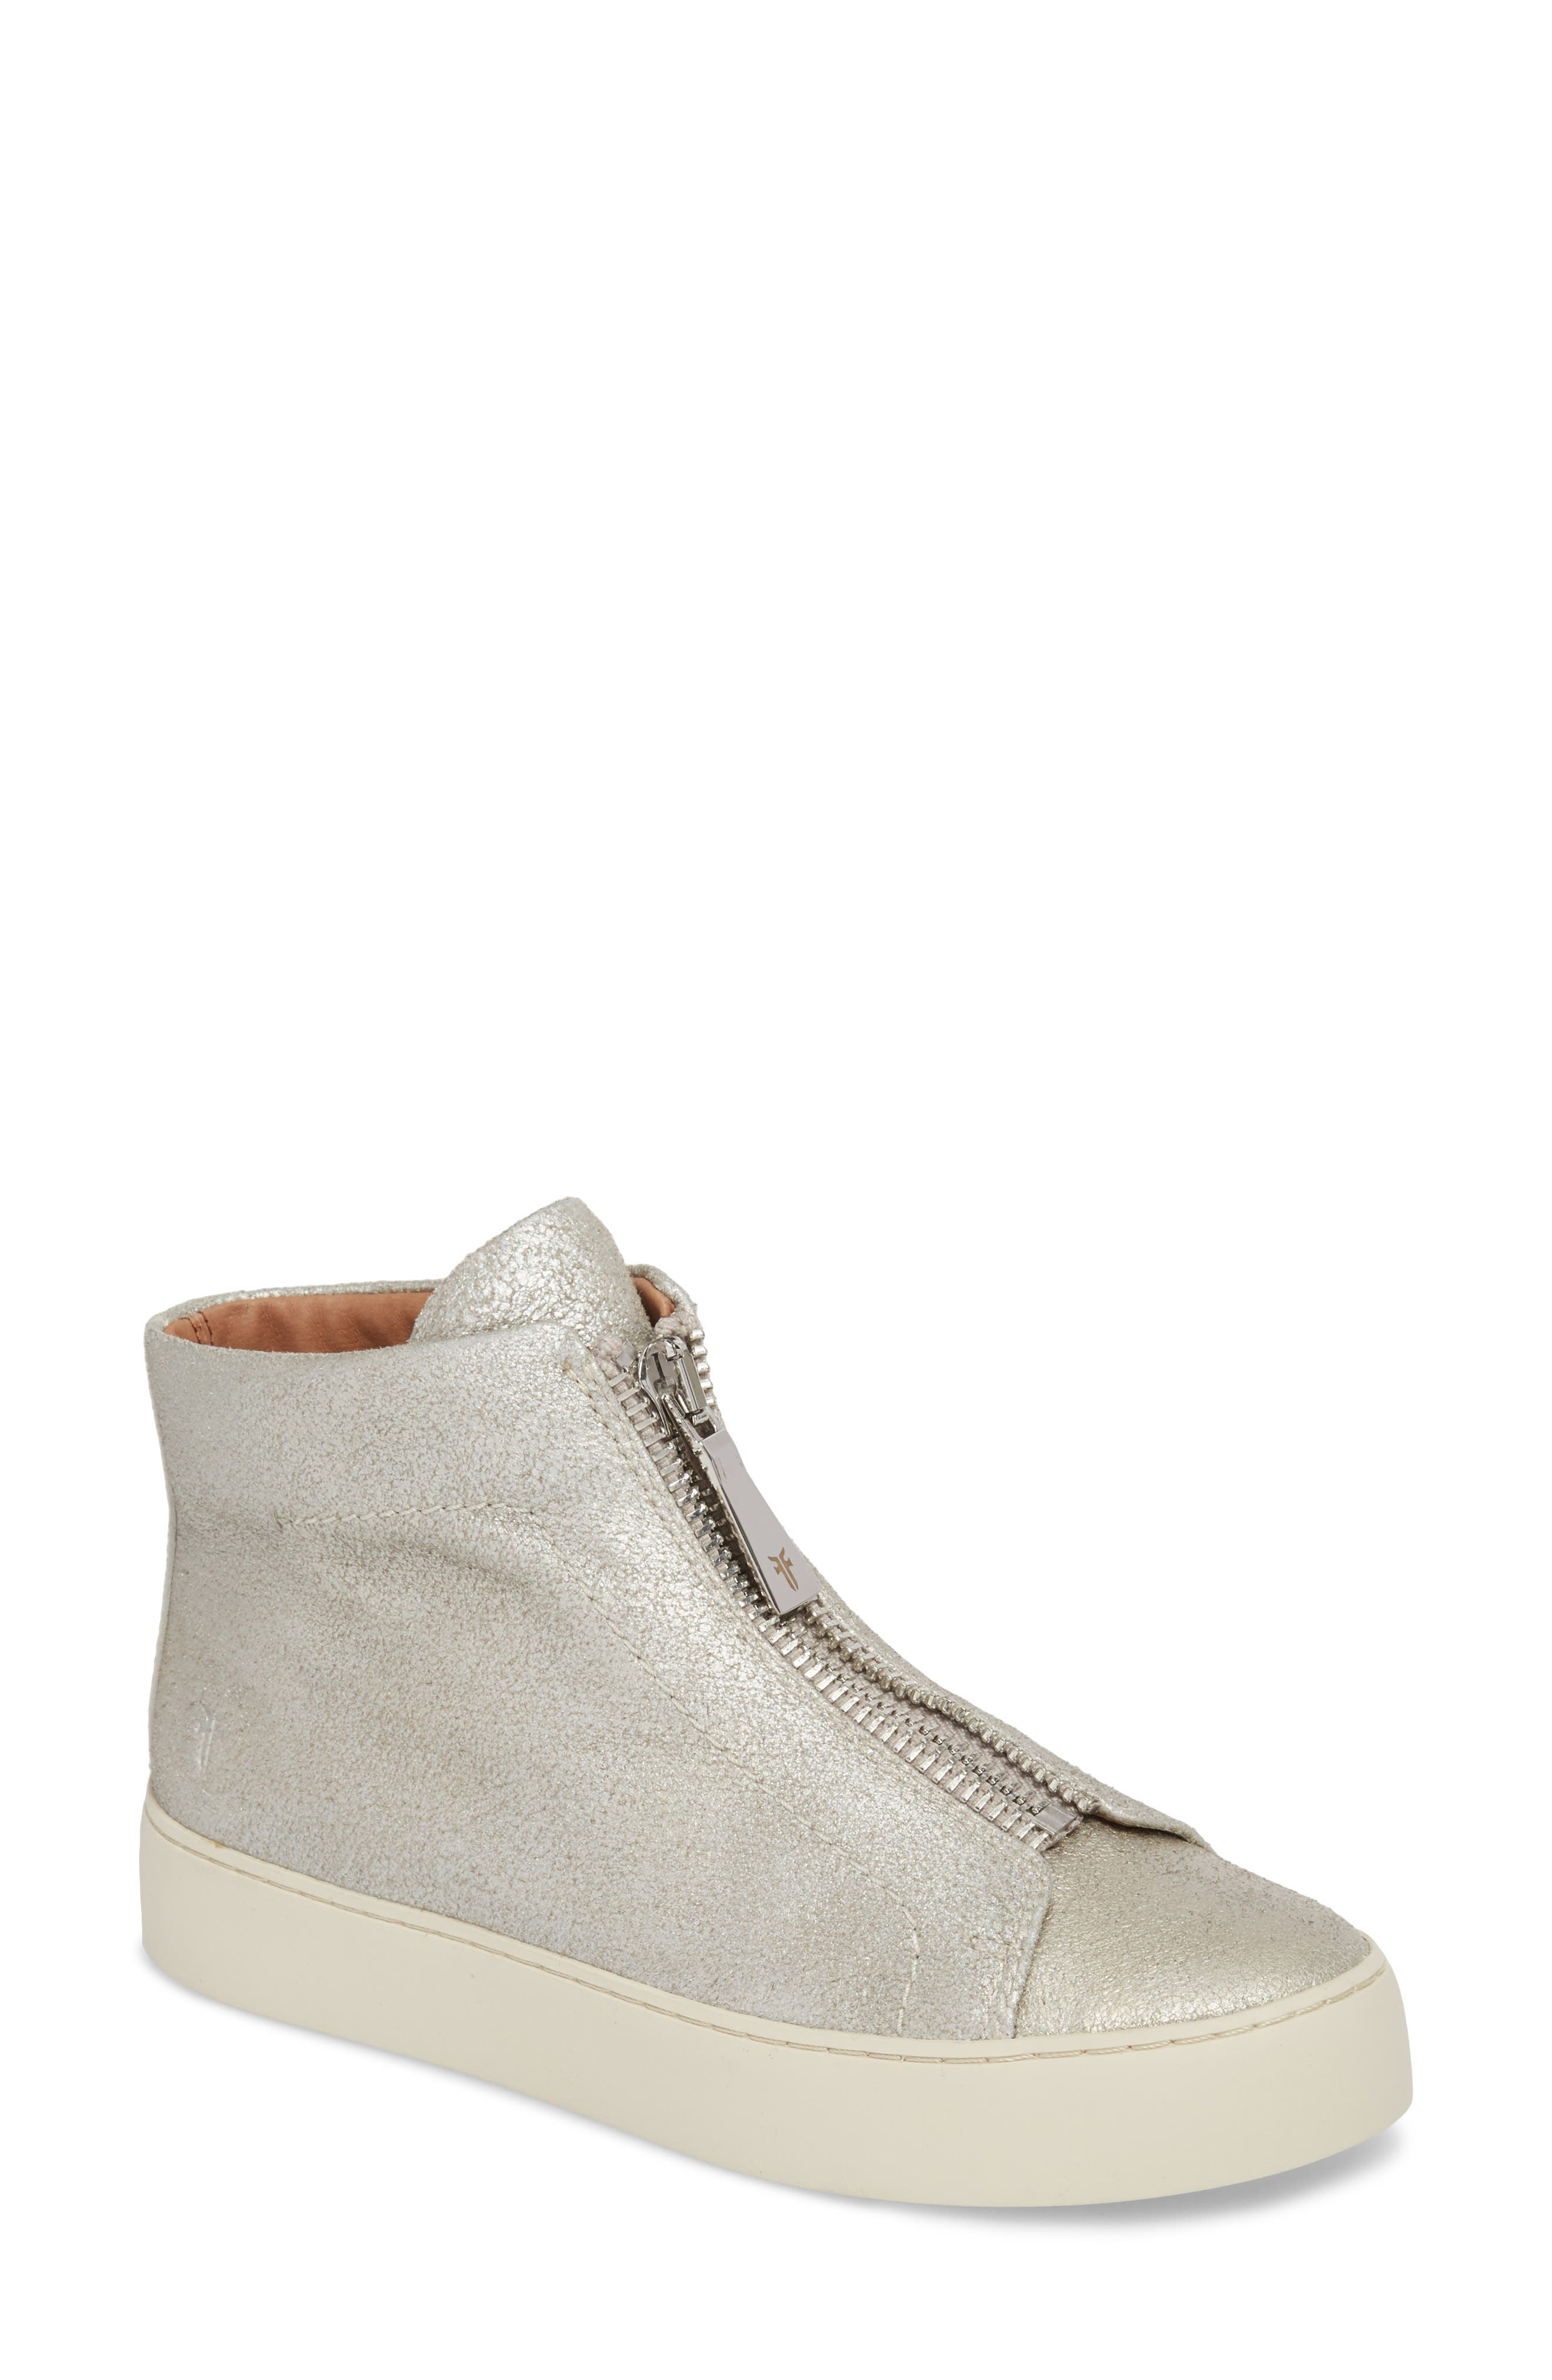 Lena Zip High Top Sneaker,                             Main thumbnail 1, color,